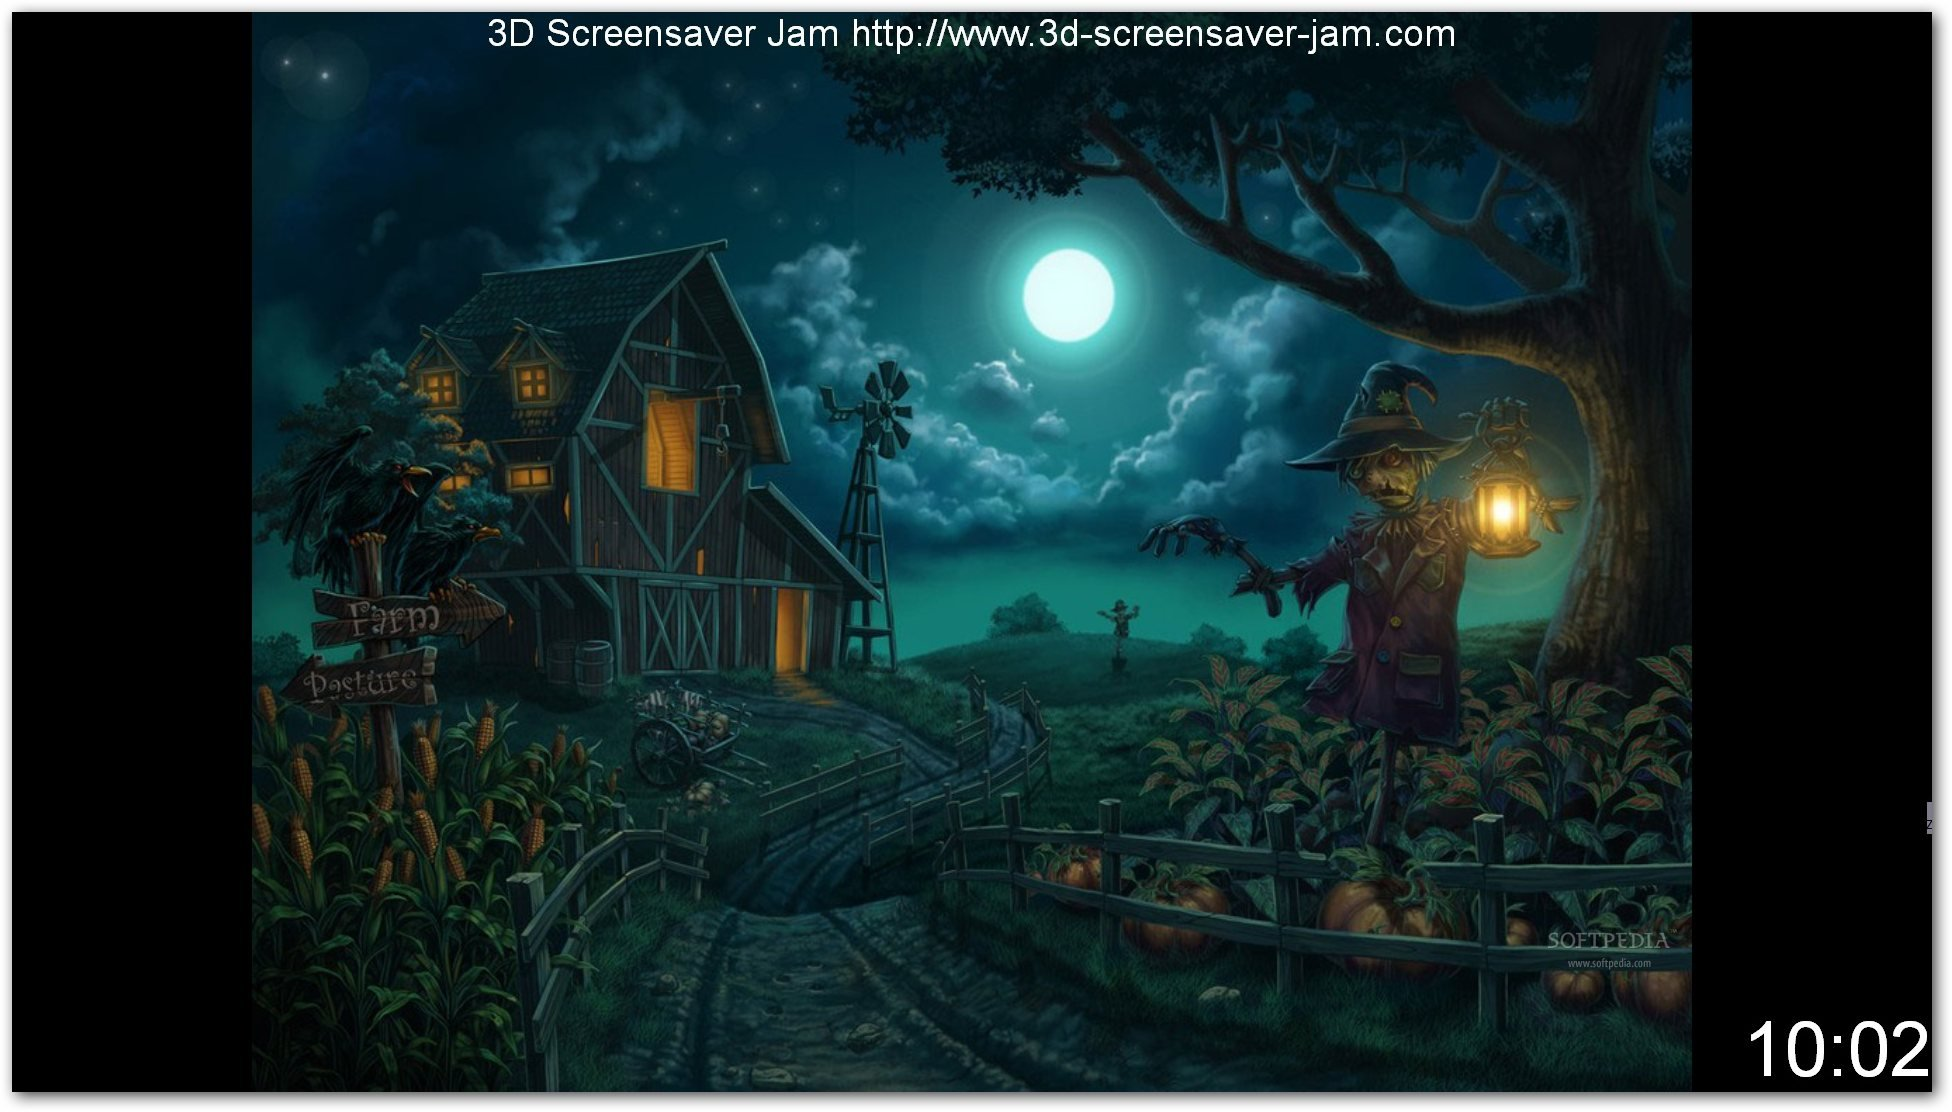 48 scary halloween wallpapers and screensavers on - Scary halloween screensavers animated ...